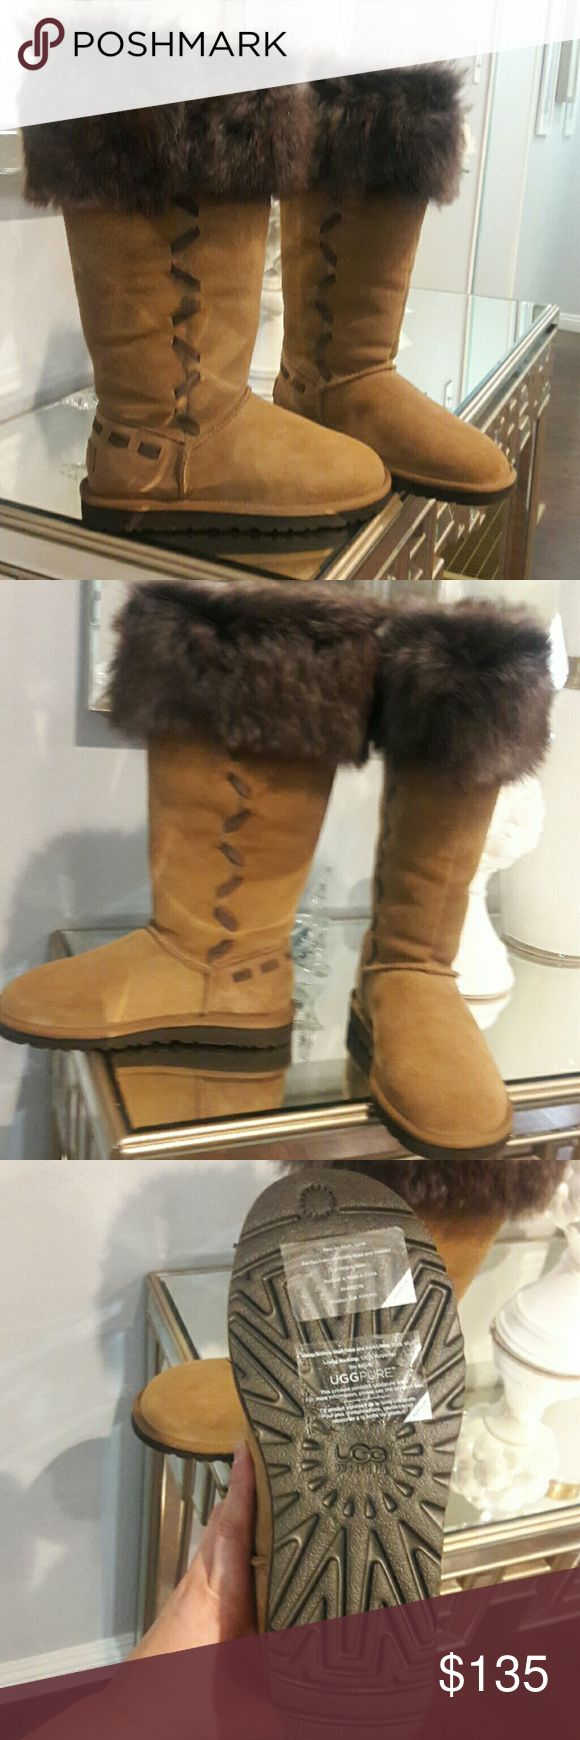 Tall UGG Boots Beautiful tall fur UGG Boots. Brand new, in perfect condition. No flaws, smoke free home. Retail price $295. No box. 100% authentic! UGG Shoes Winter & Rain Boots